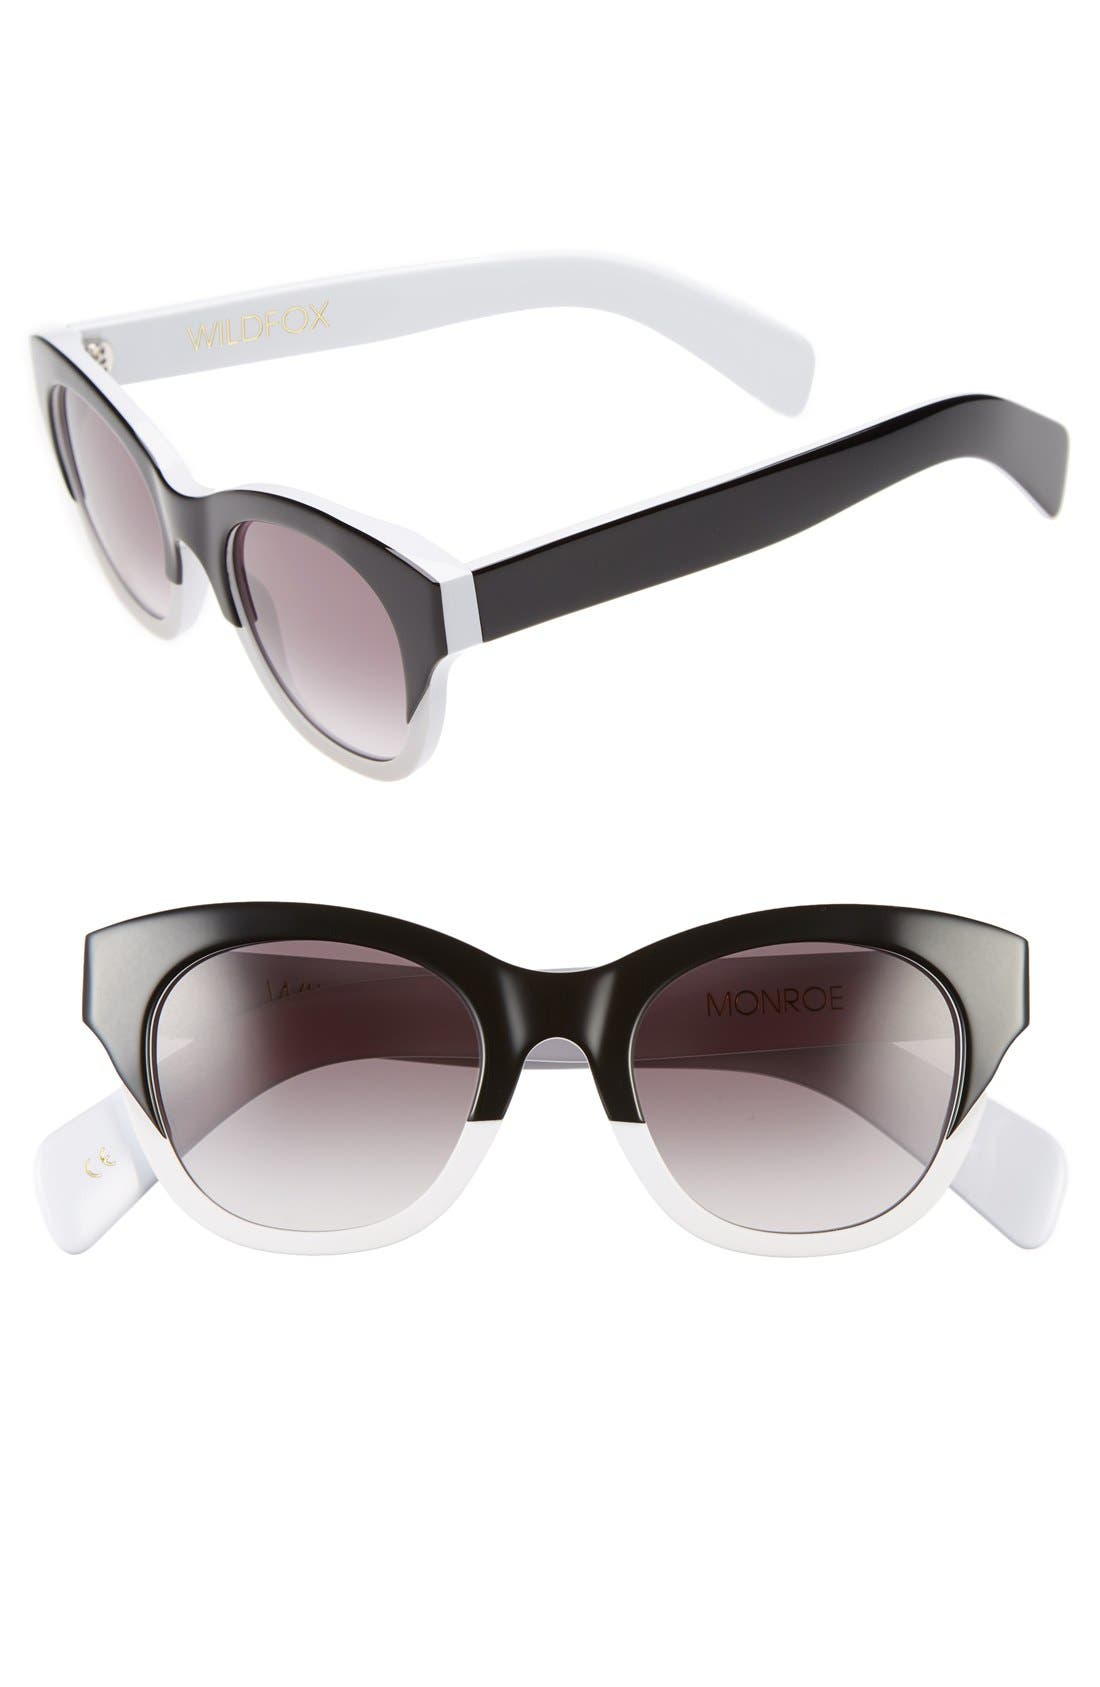 Main Image - Wildfox 'Monroe' 49mm Sunglasses